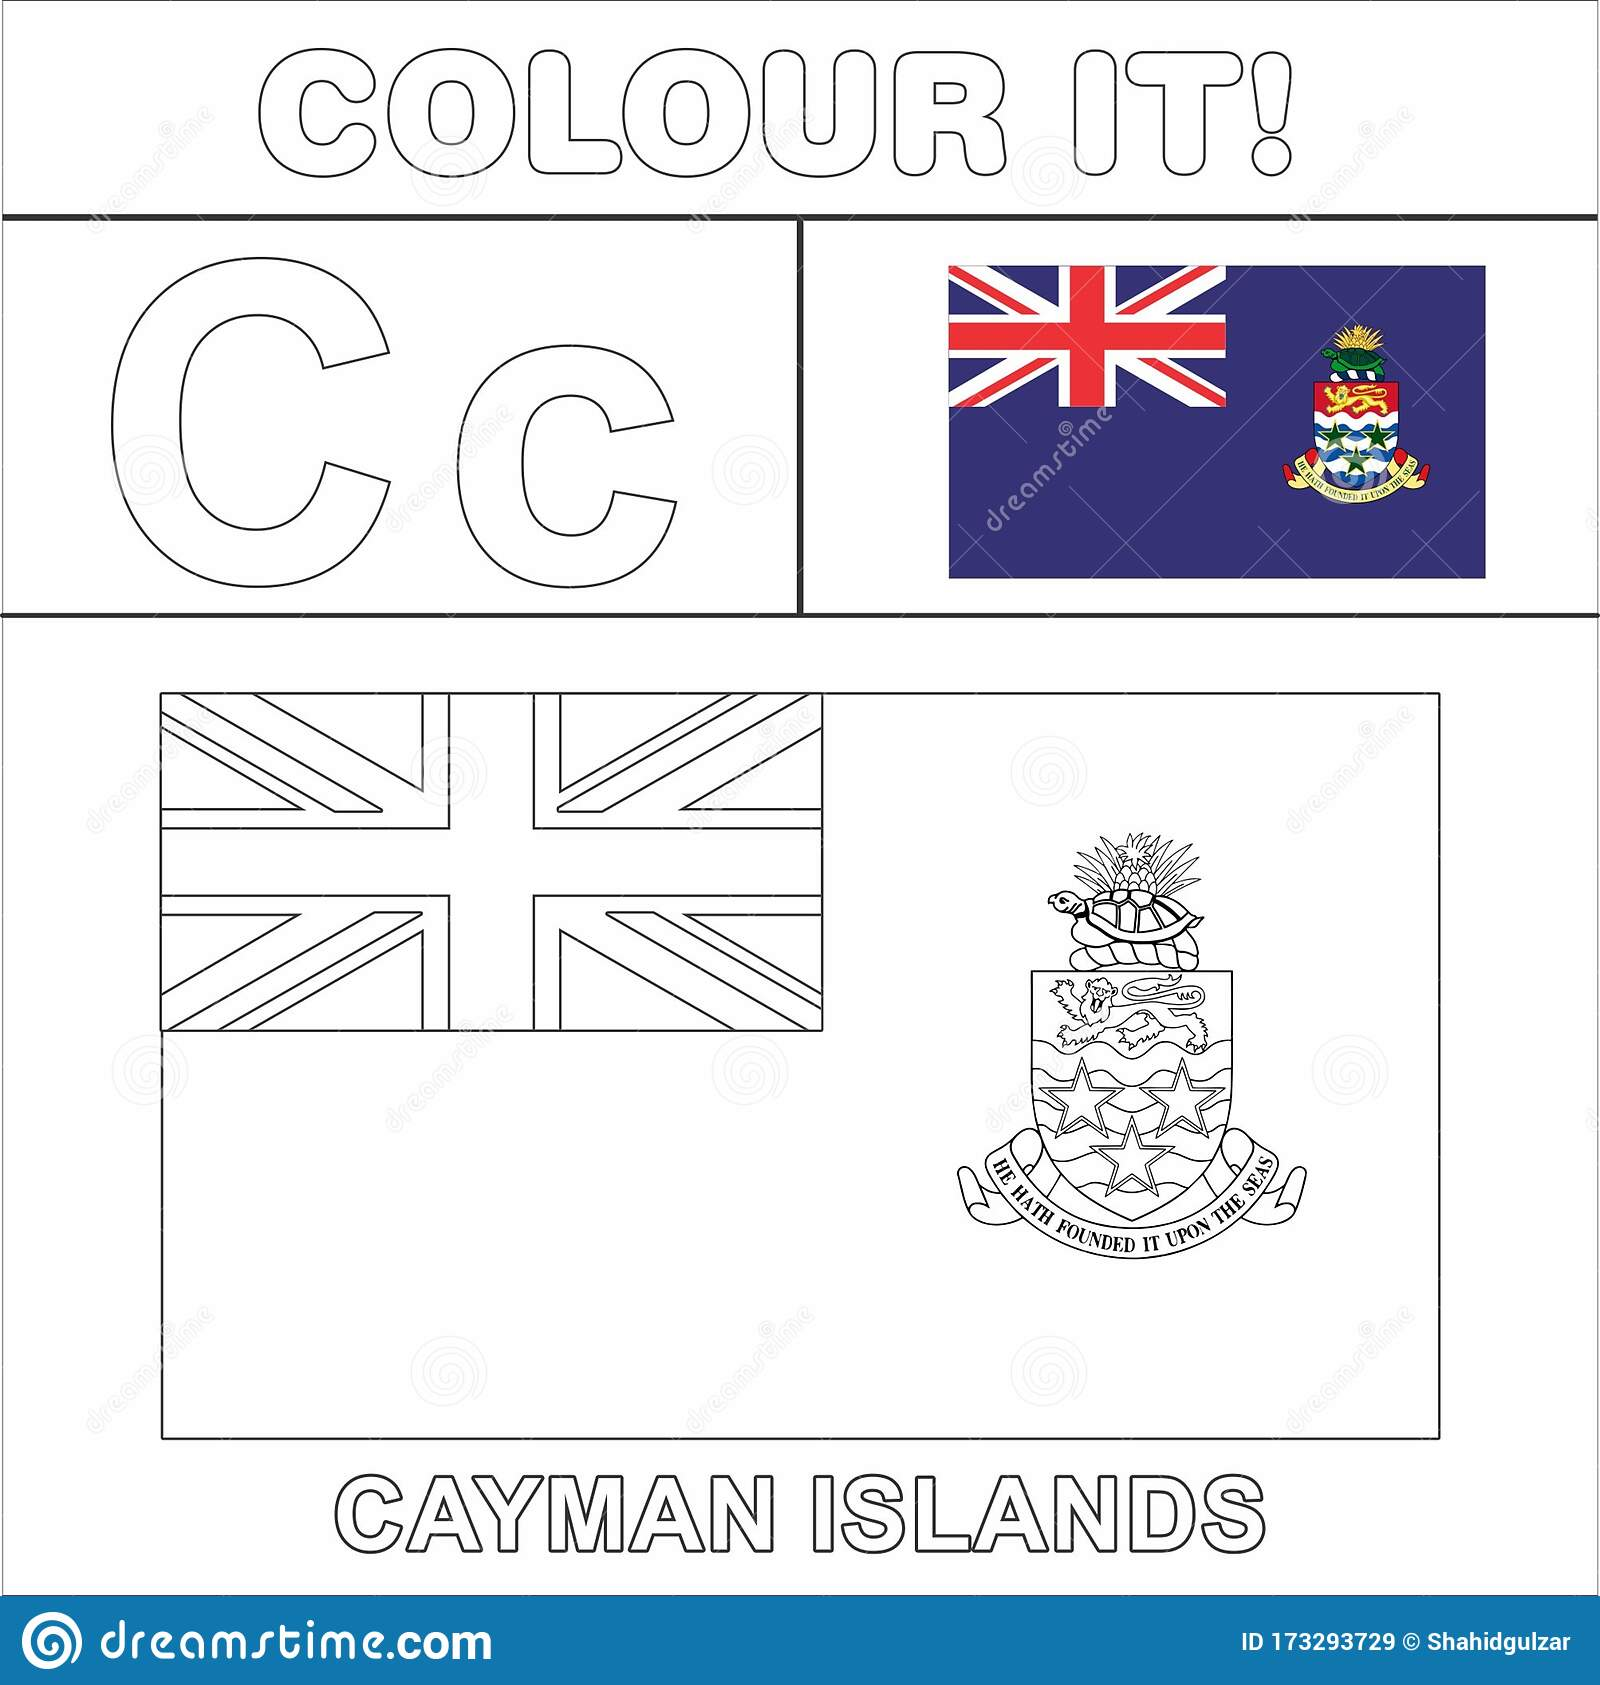 Color by Phoneme Phase 3 Coloring Pages (teacher made) | 1685x1600